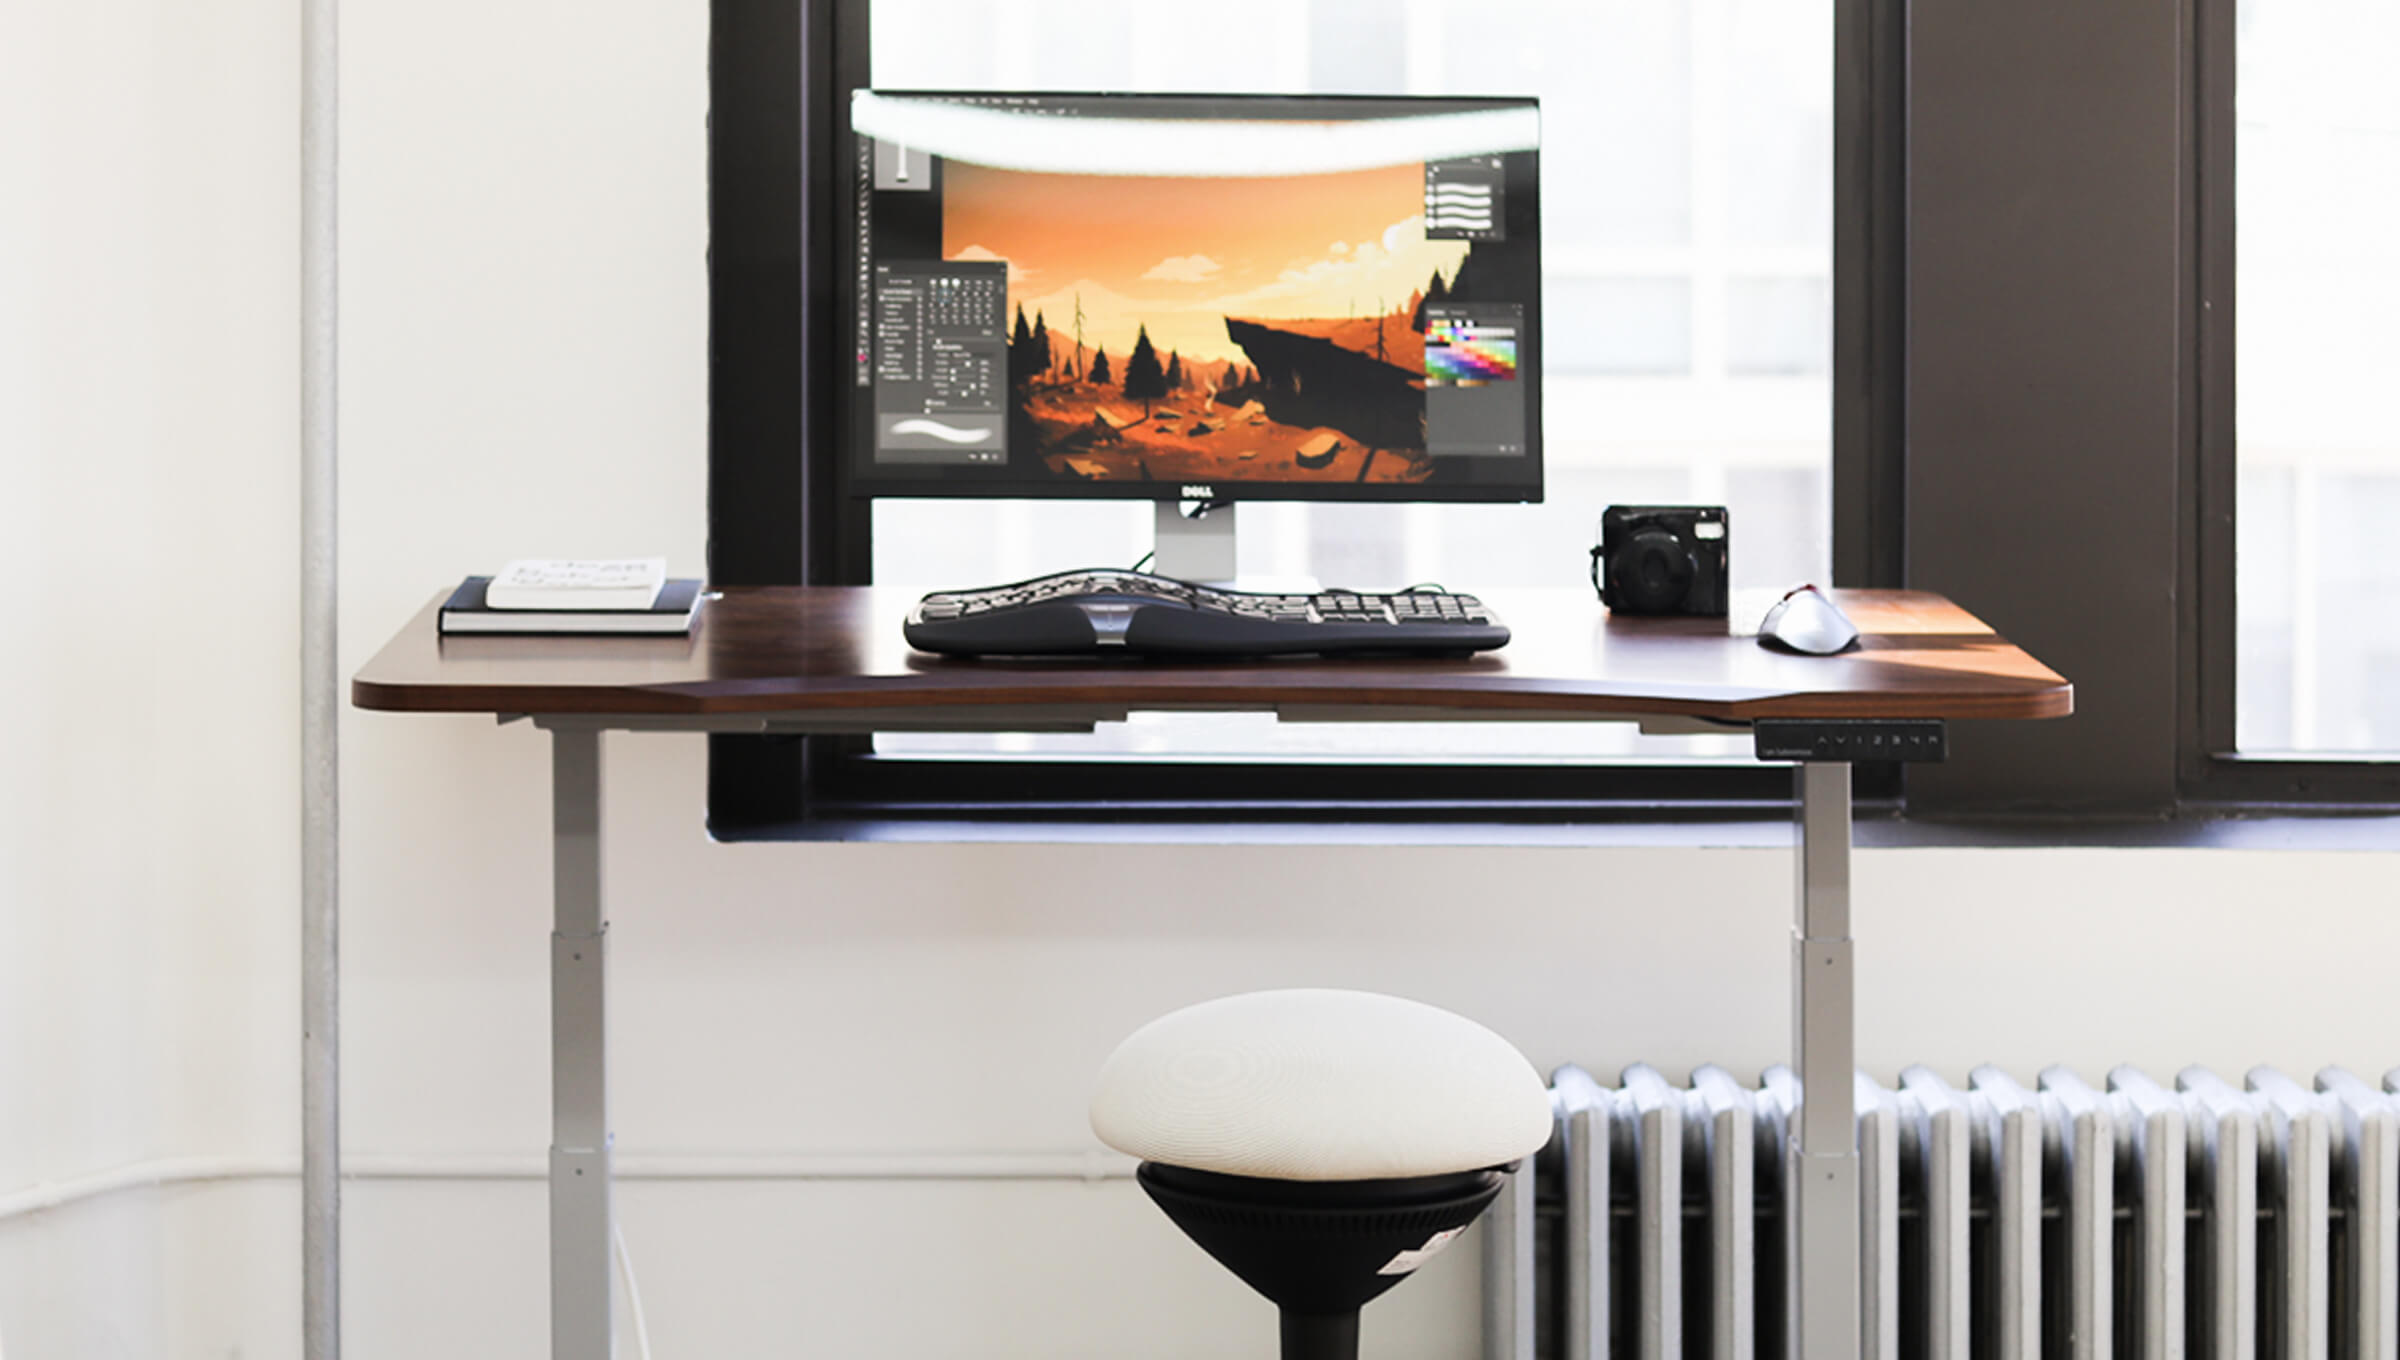 Best electric standing desk- Ergolux Single Motor Standing Desk